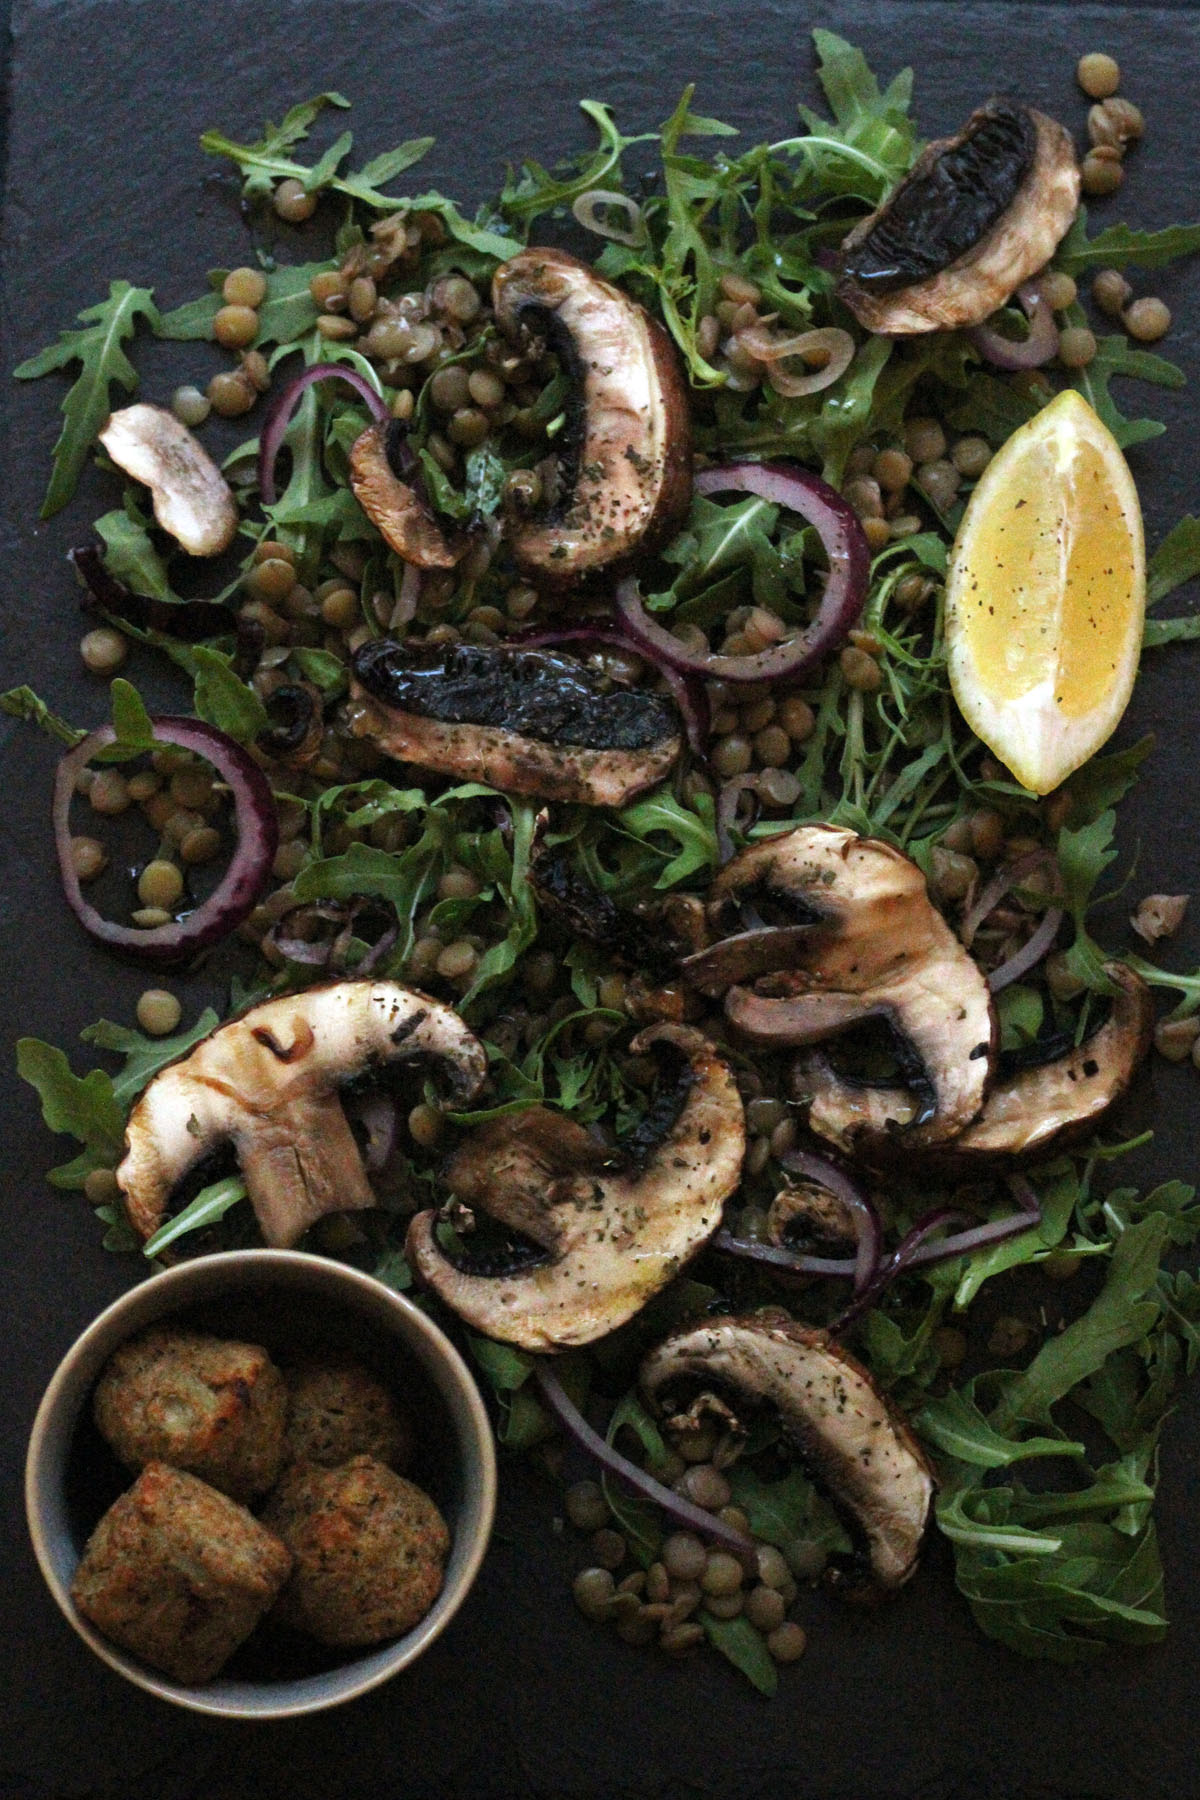 Portobello Mushroom and Lentil Salad with Lemon Dressing